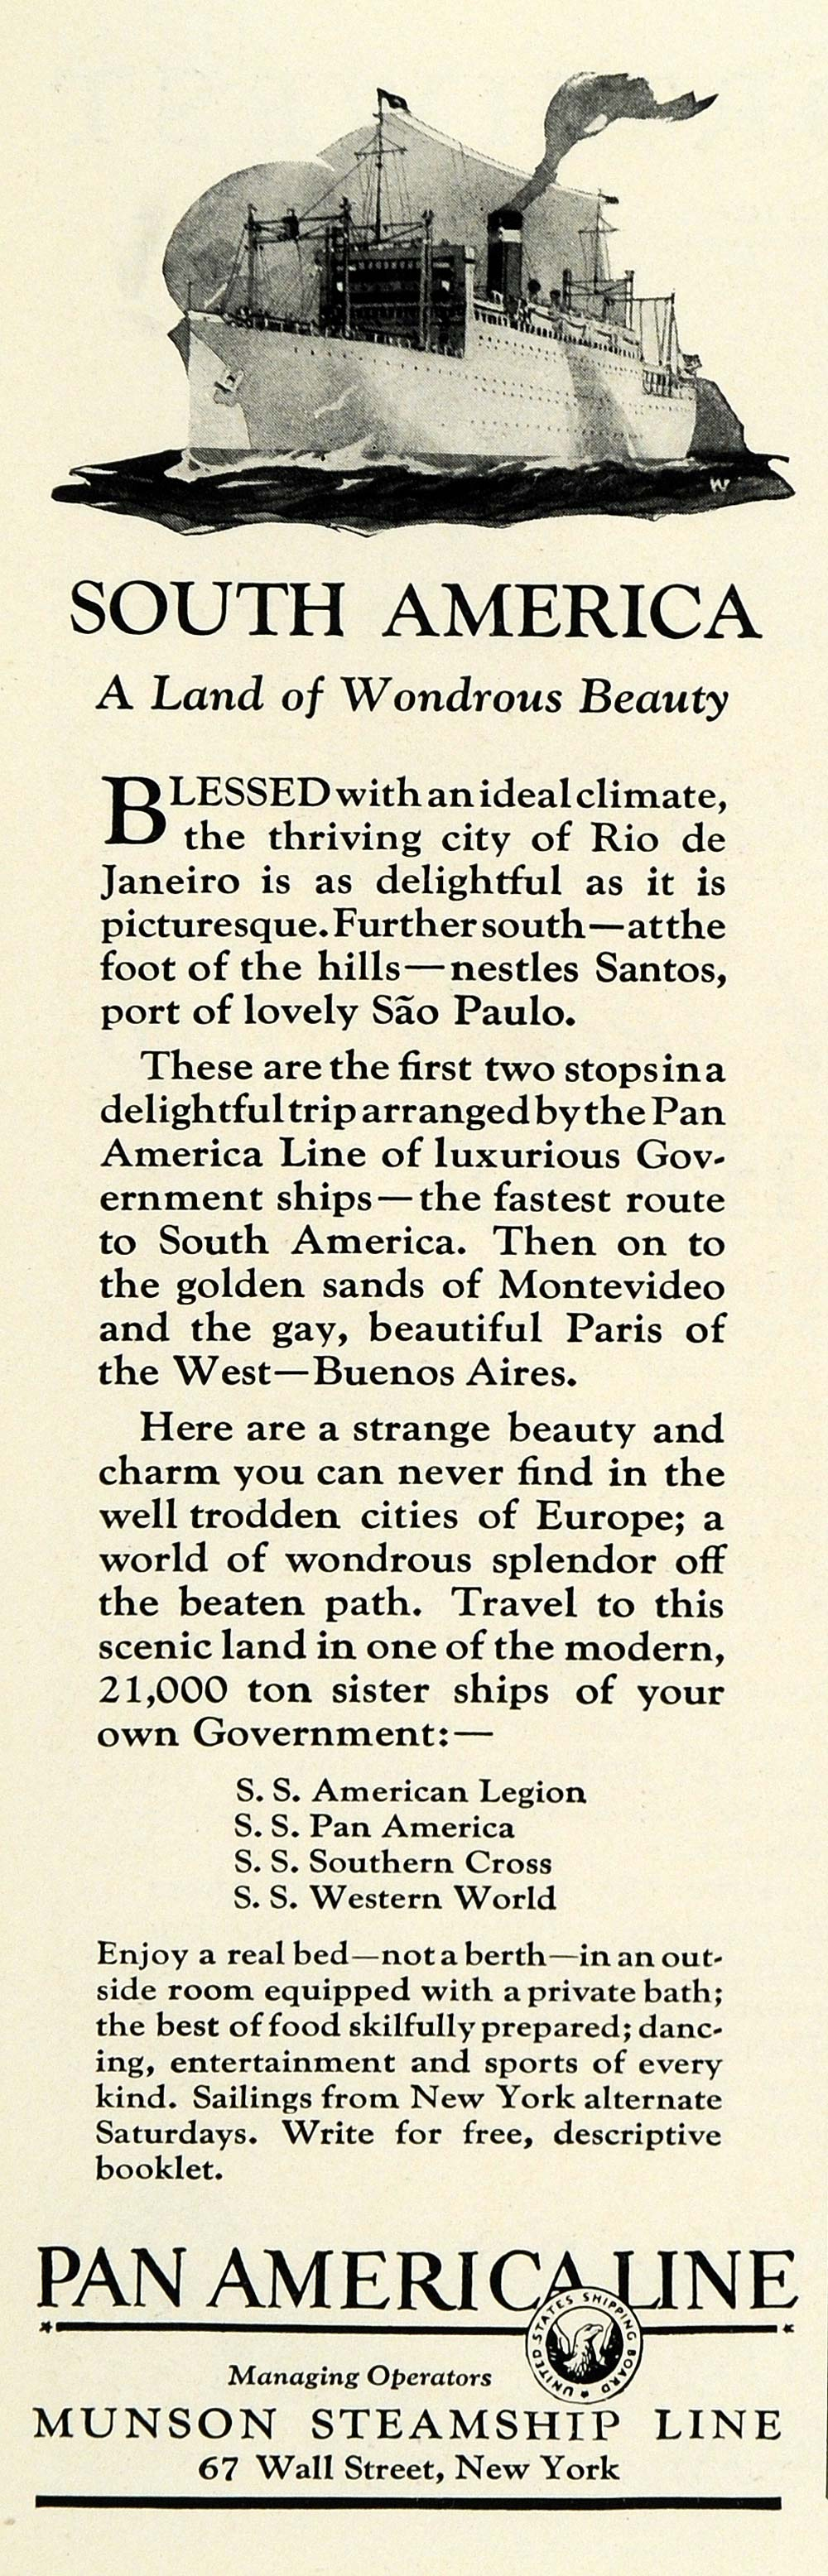 1925 Ad Pan America Line Munson Steamship Line South America Cruise Ship NGM1